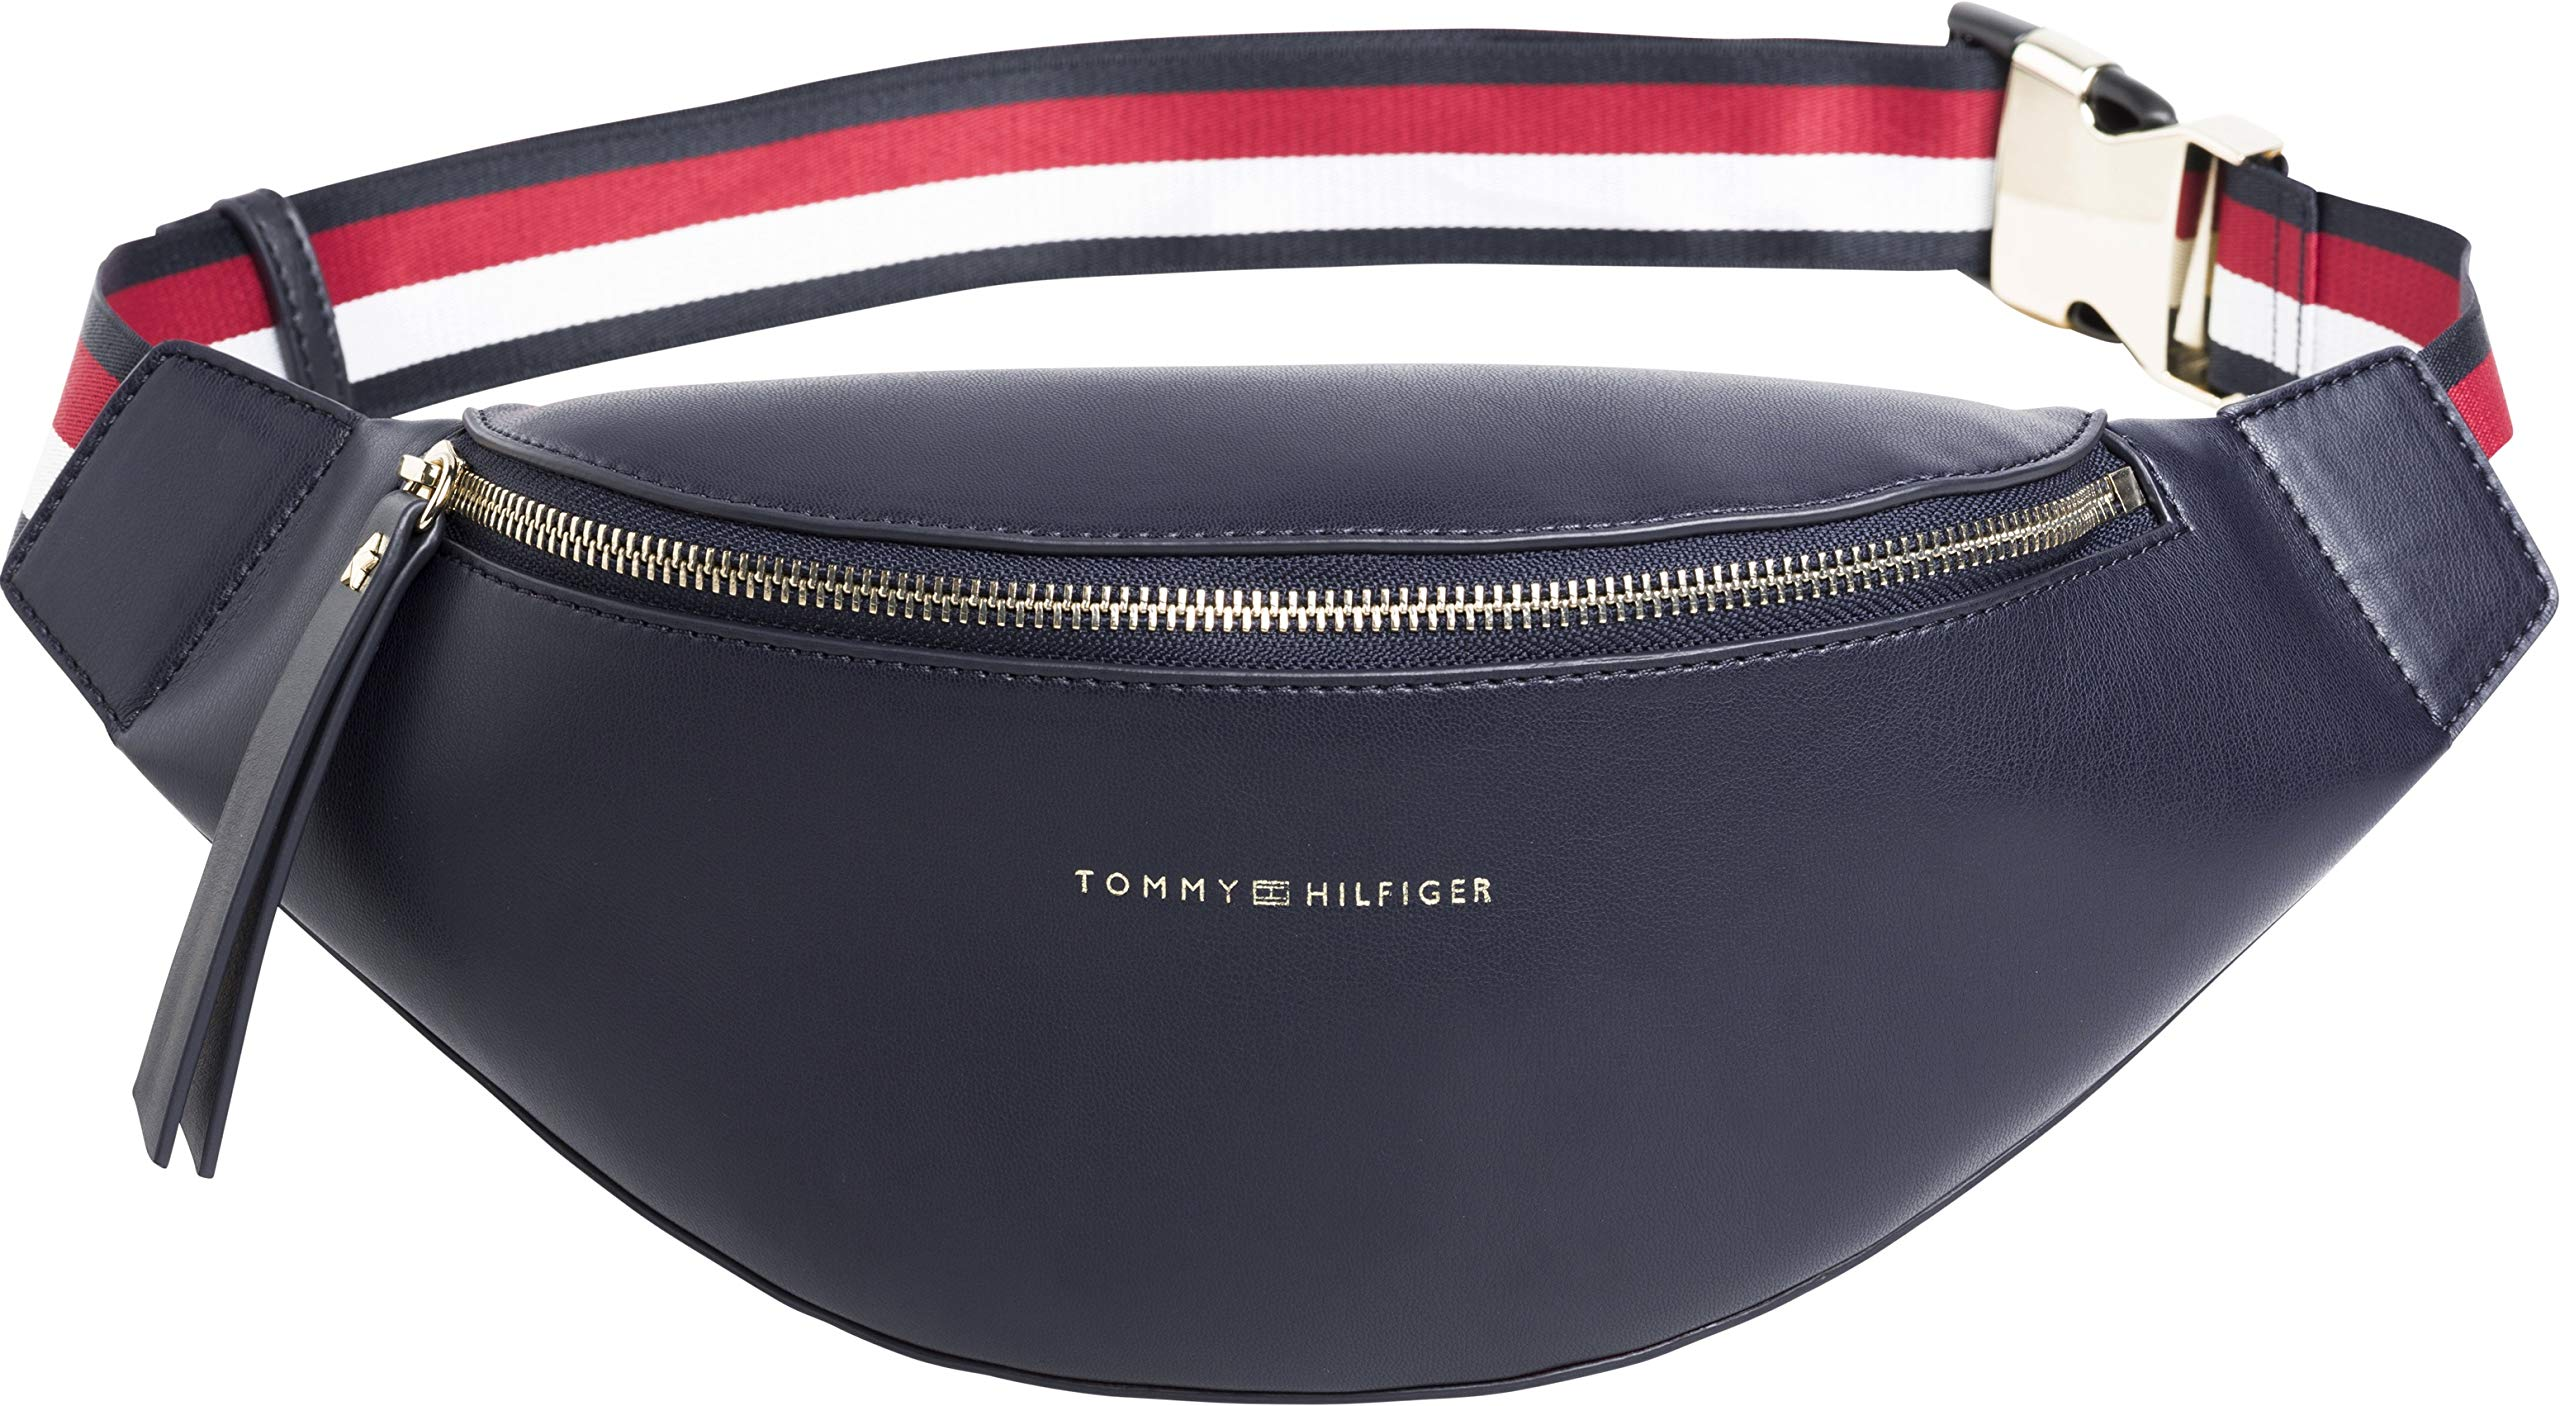 Tommy Hilfiger Iconic Tommy Womens Bum Bag One Size Corporate